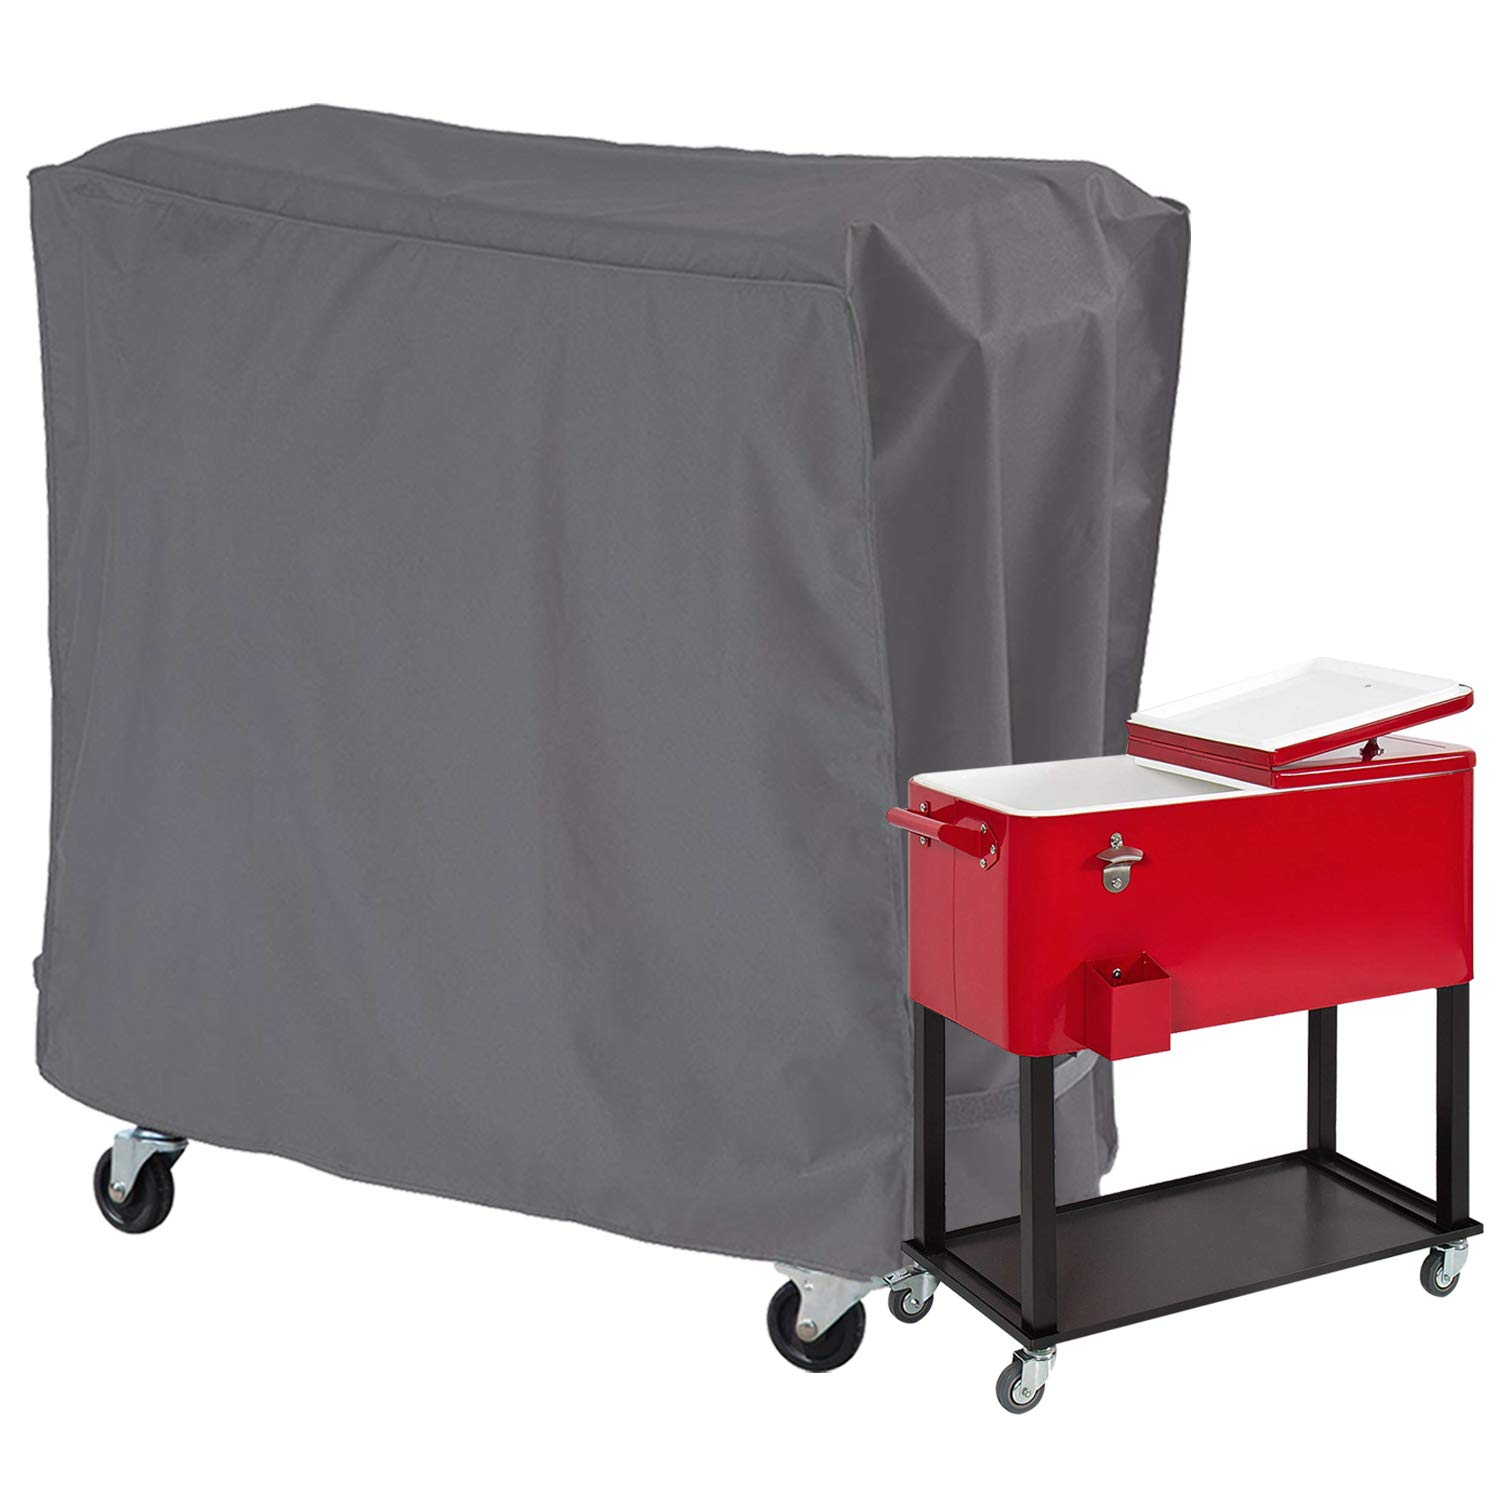 STARTWO Cooler Cart Cover Waterproof Protective Cover, Universal Fit for Most 80 QT Rolling Cooler (Patio Cooler On Wheels, Beverage Cart, Rolling Ice Chest, Party Cooler) by STARTWO